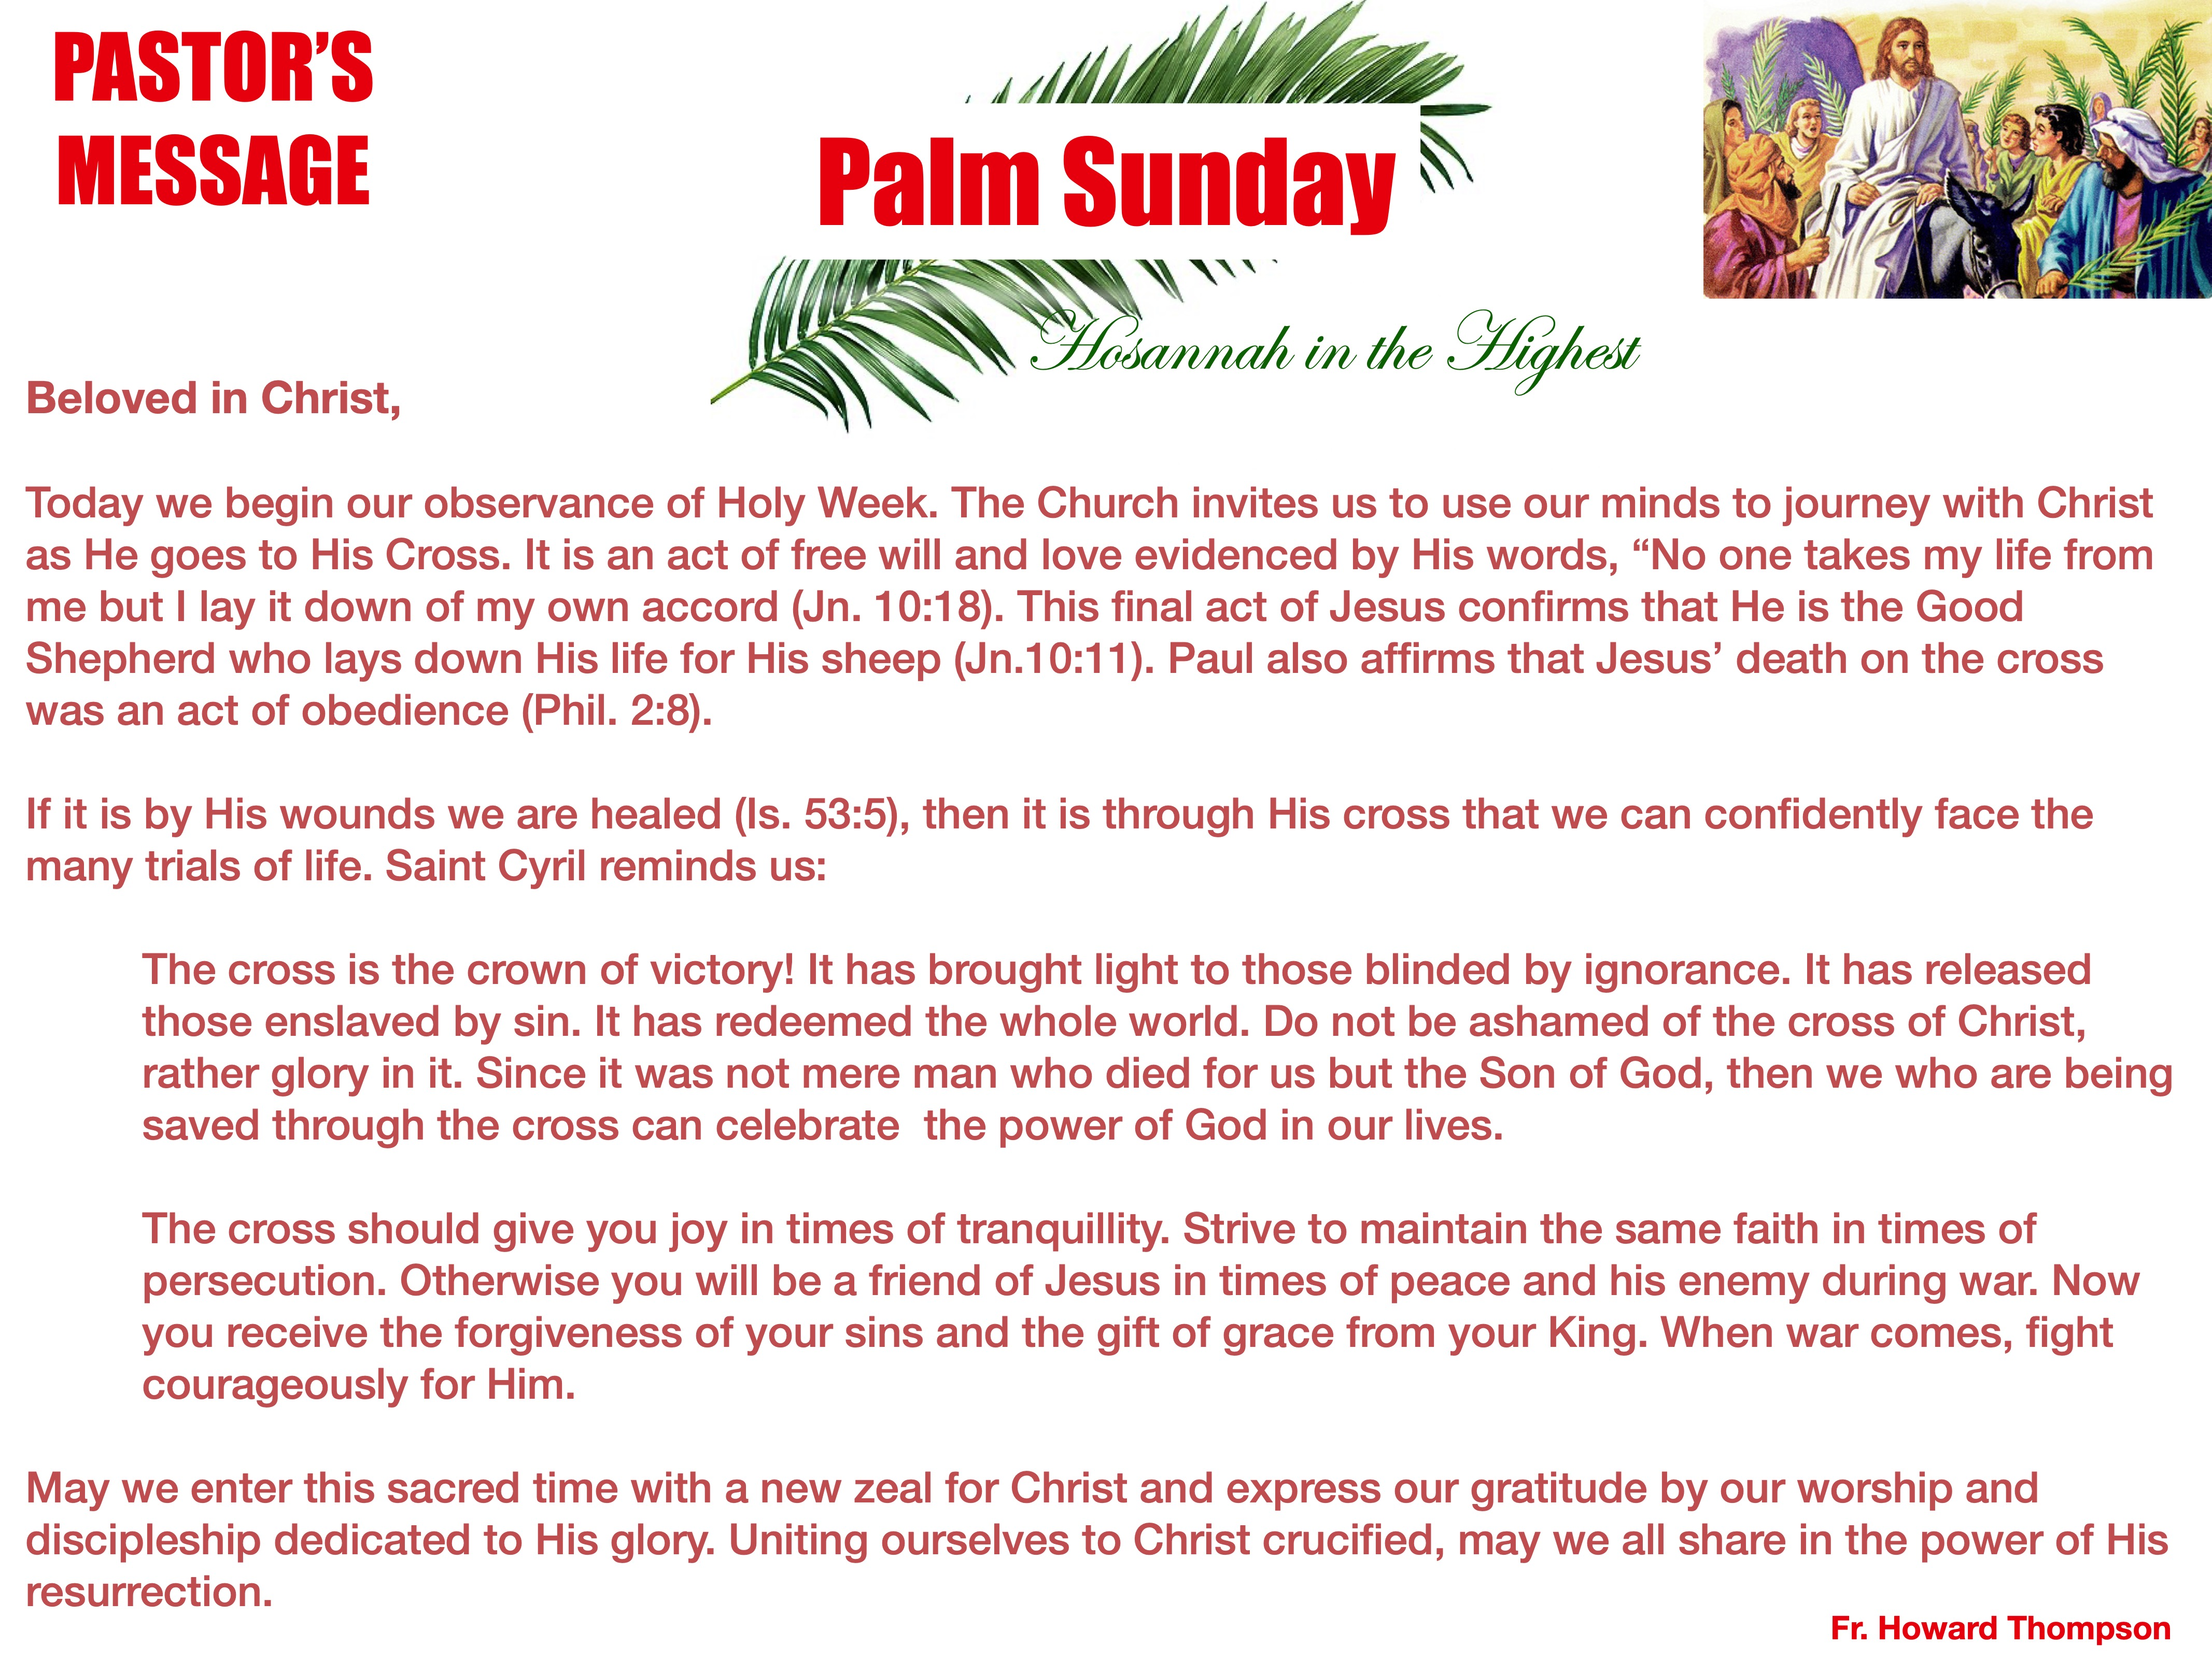 Pastor's Message - 107 Palm Sunday_001